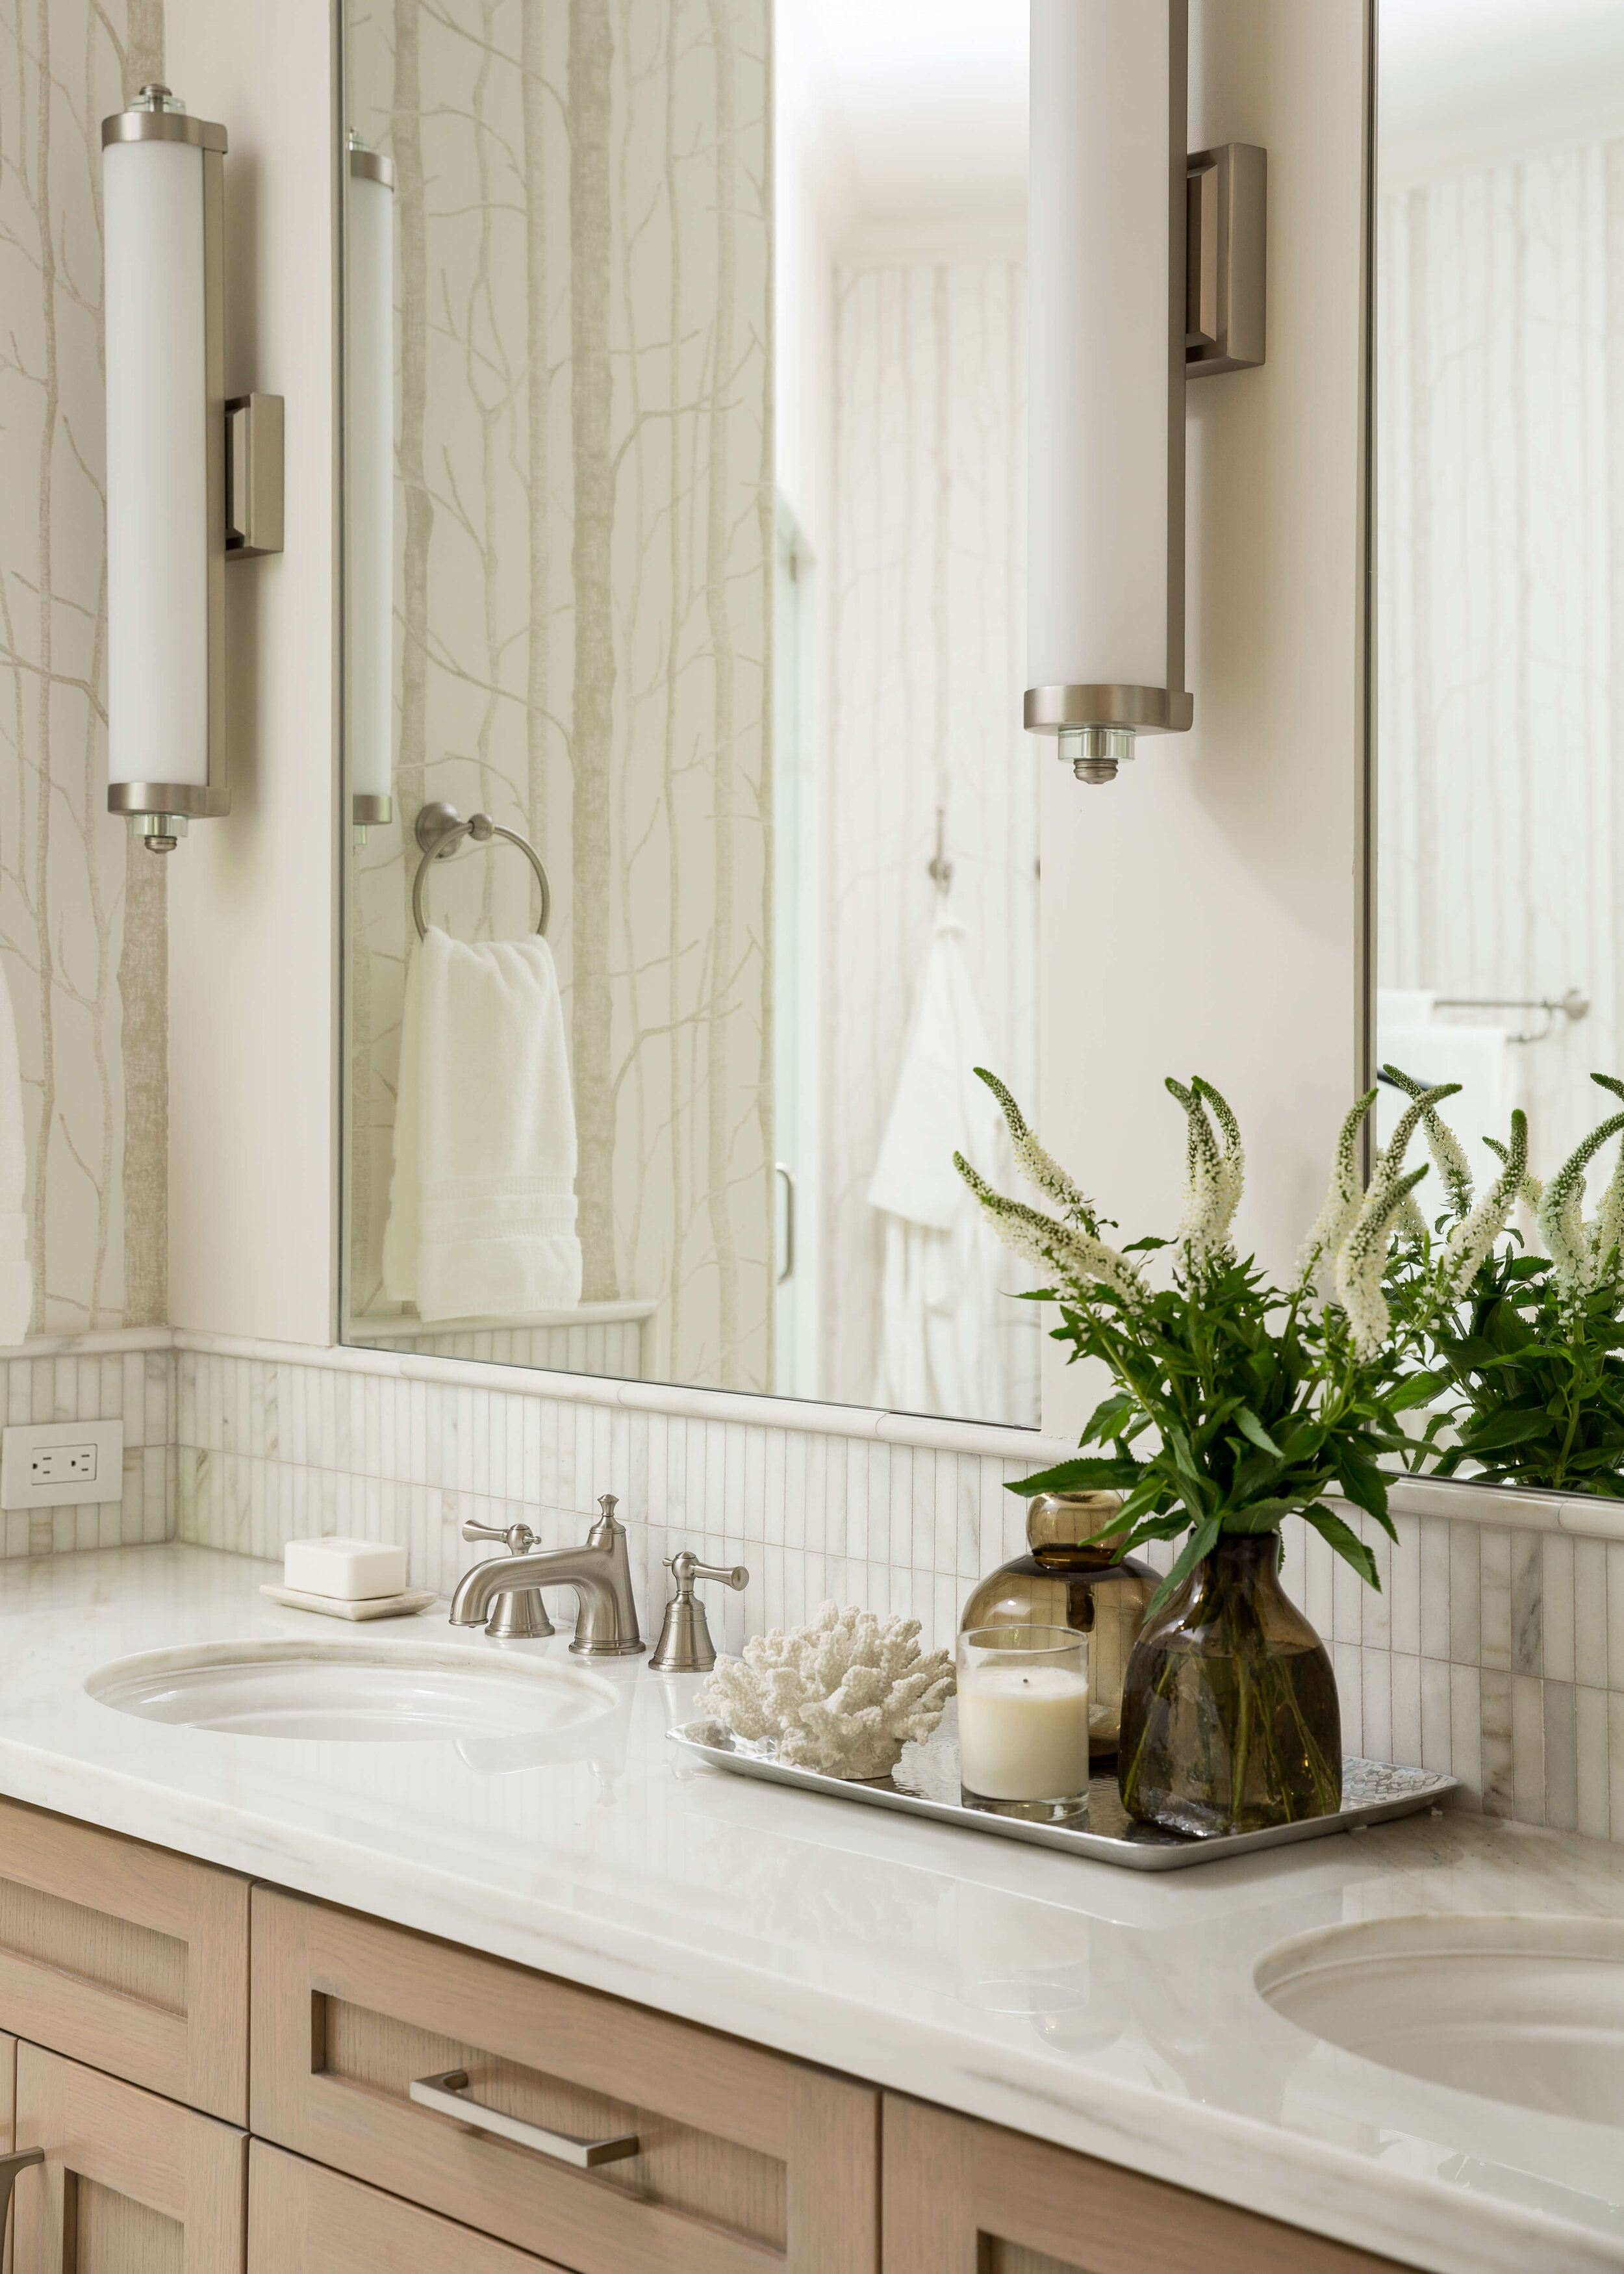 7 Basic Design Considerations For Selecting Cabinet Pulls And Knobs For Your Interior Design Project Designed